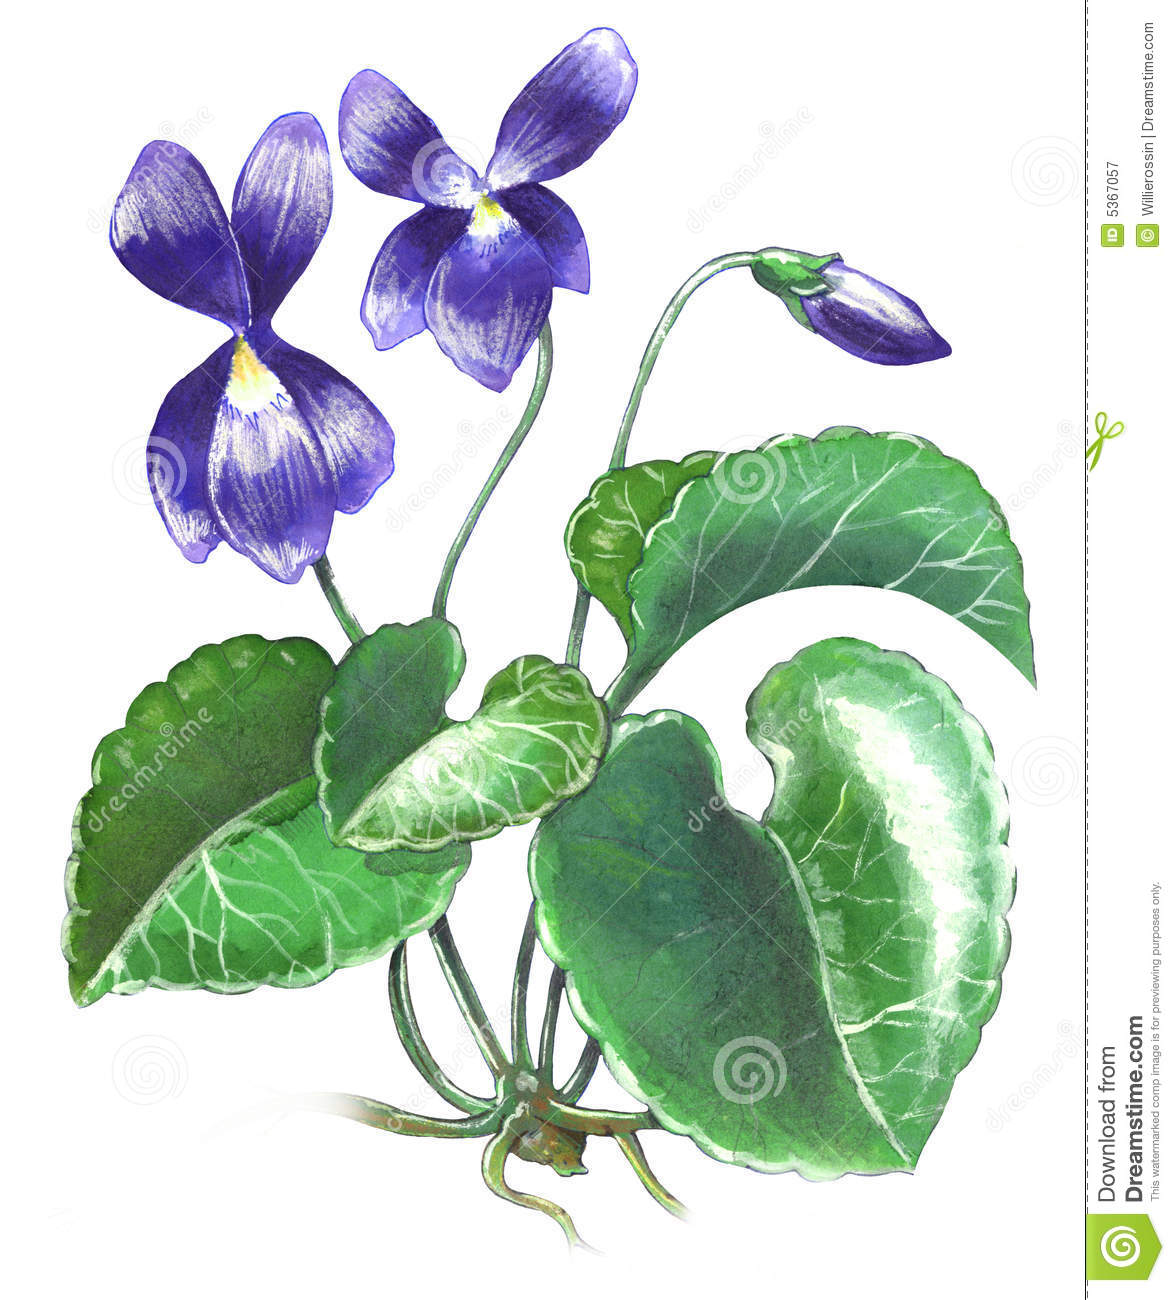 Violet Flower Royalty Free Stock Photography - Image: 5367057